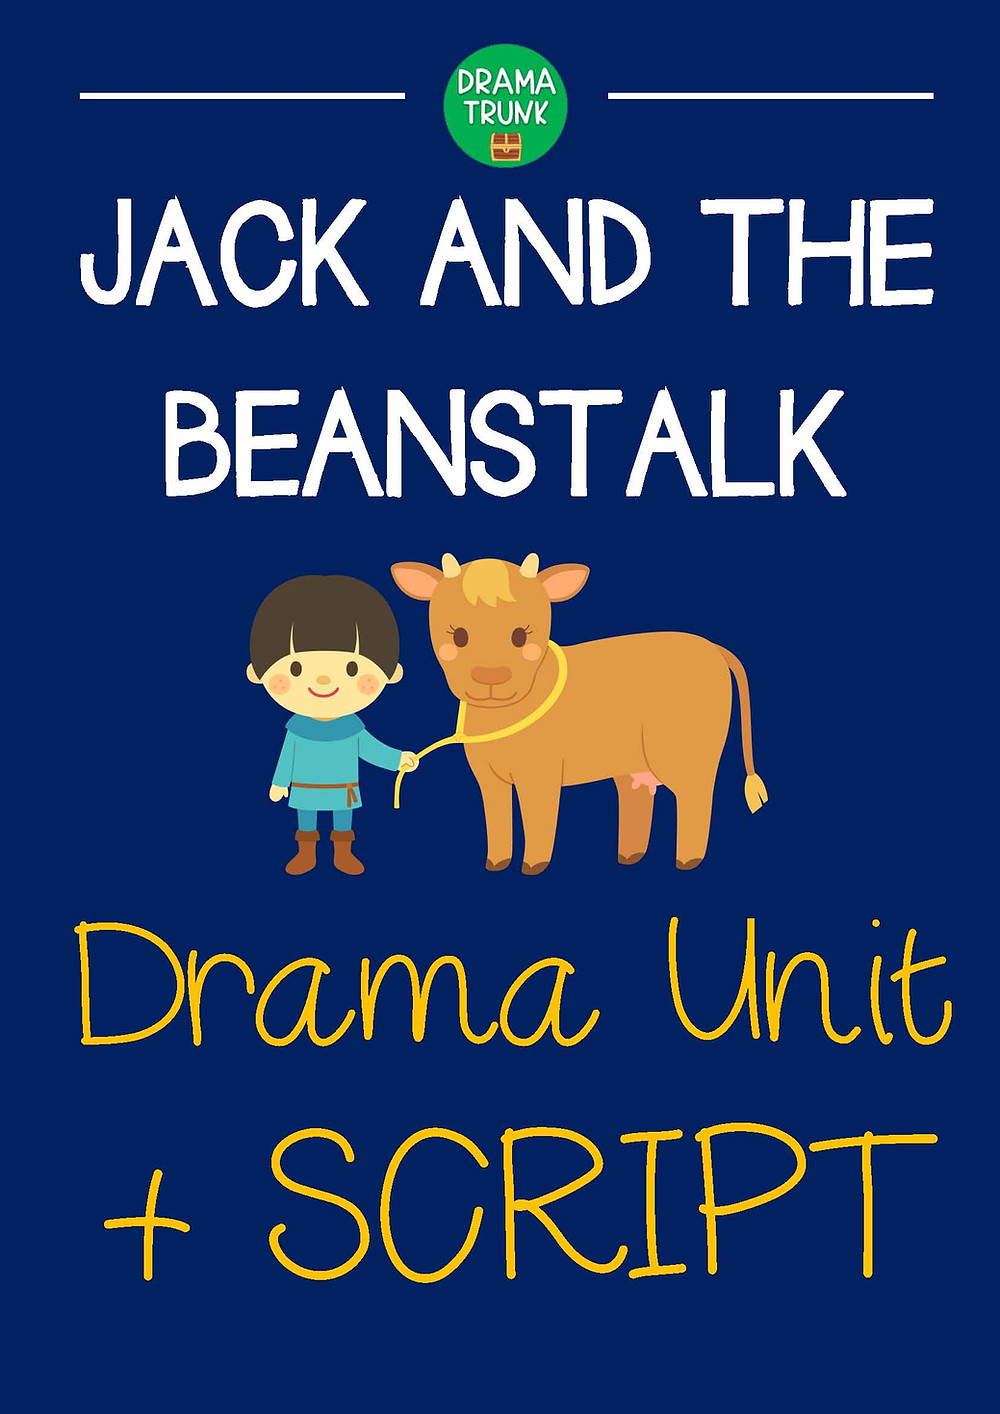 Jack and the Beanstalk Lesson Plans and Script for Kids